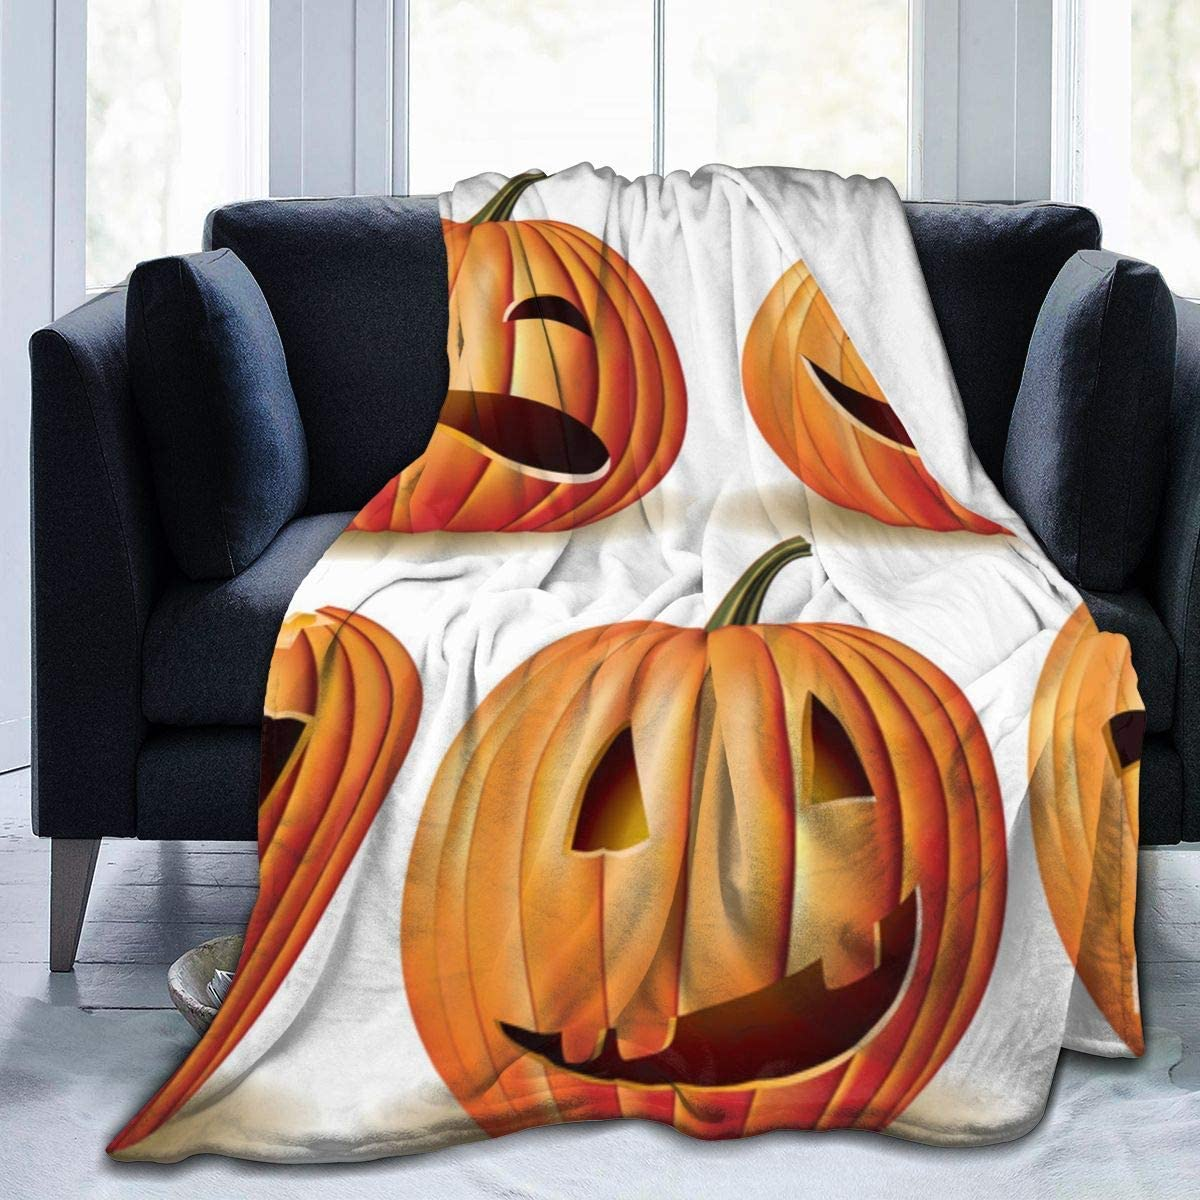 Halloween Pumpkin Soft Sales ! Super beauty product restock quality top! of SALE items from new works Flannel Blanket Lightweight Throw Shaggy